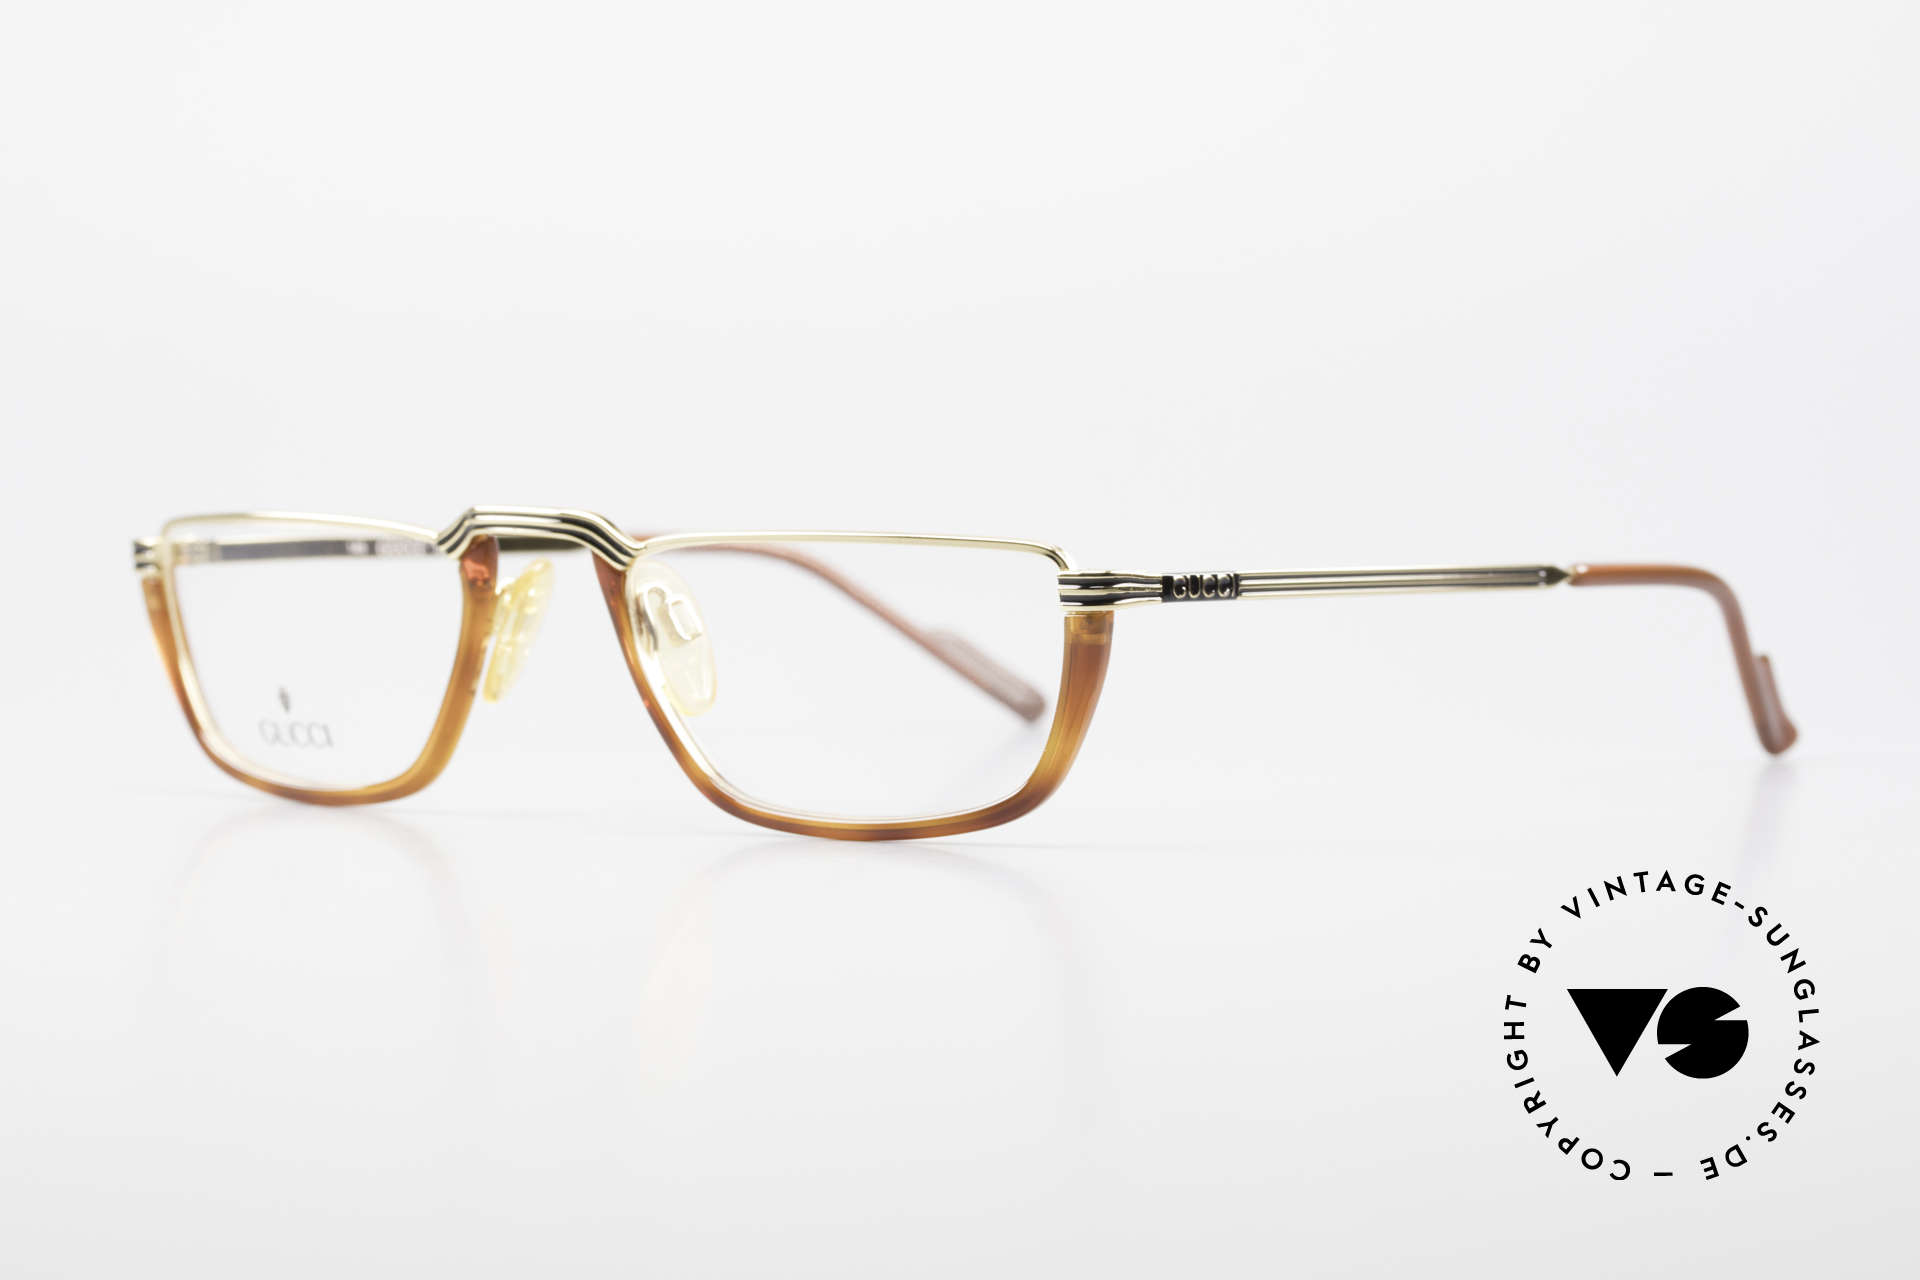 Gucci 1306 Designer Reading Eyeglasses, GOLD-PLATED in size 53-21 & with original case, Made for Men